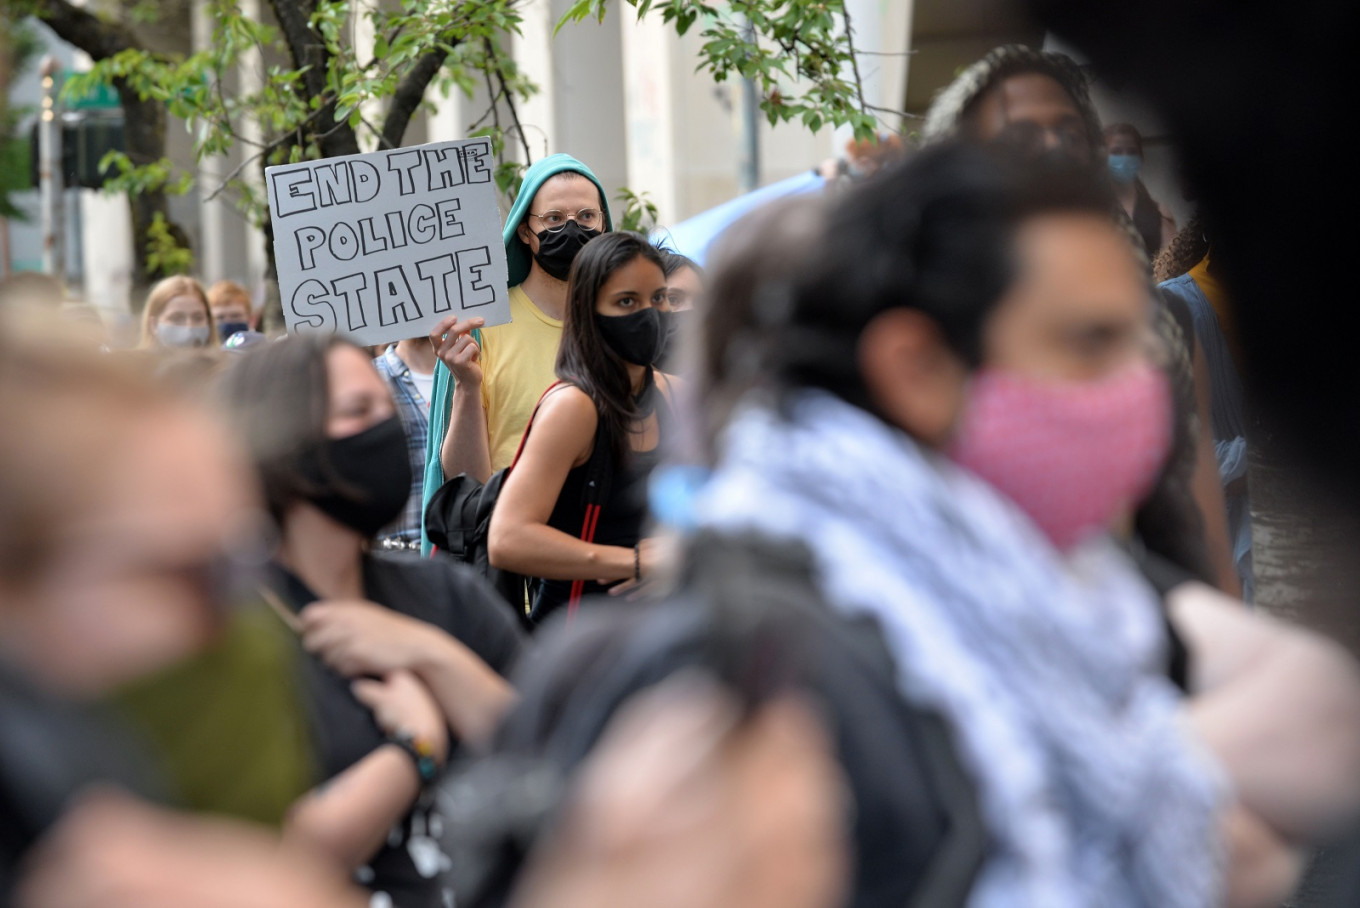 Outrage over reports of federal agents arresting Portland protesters